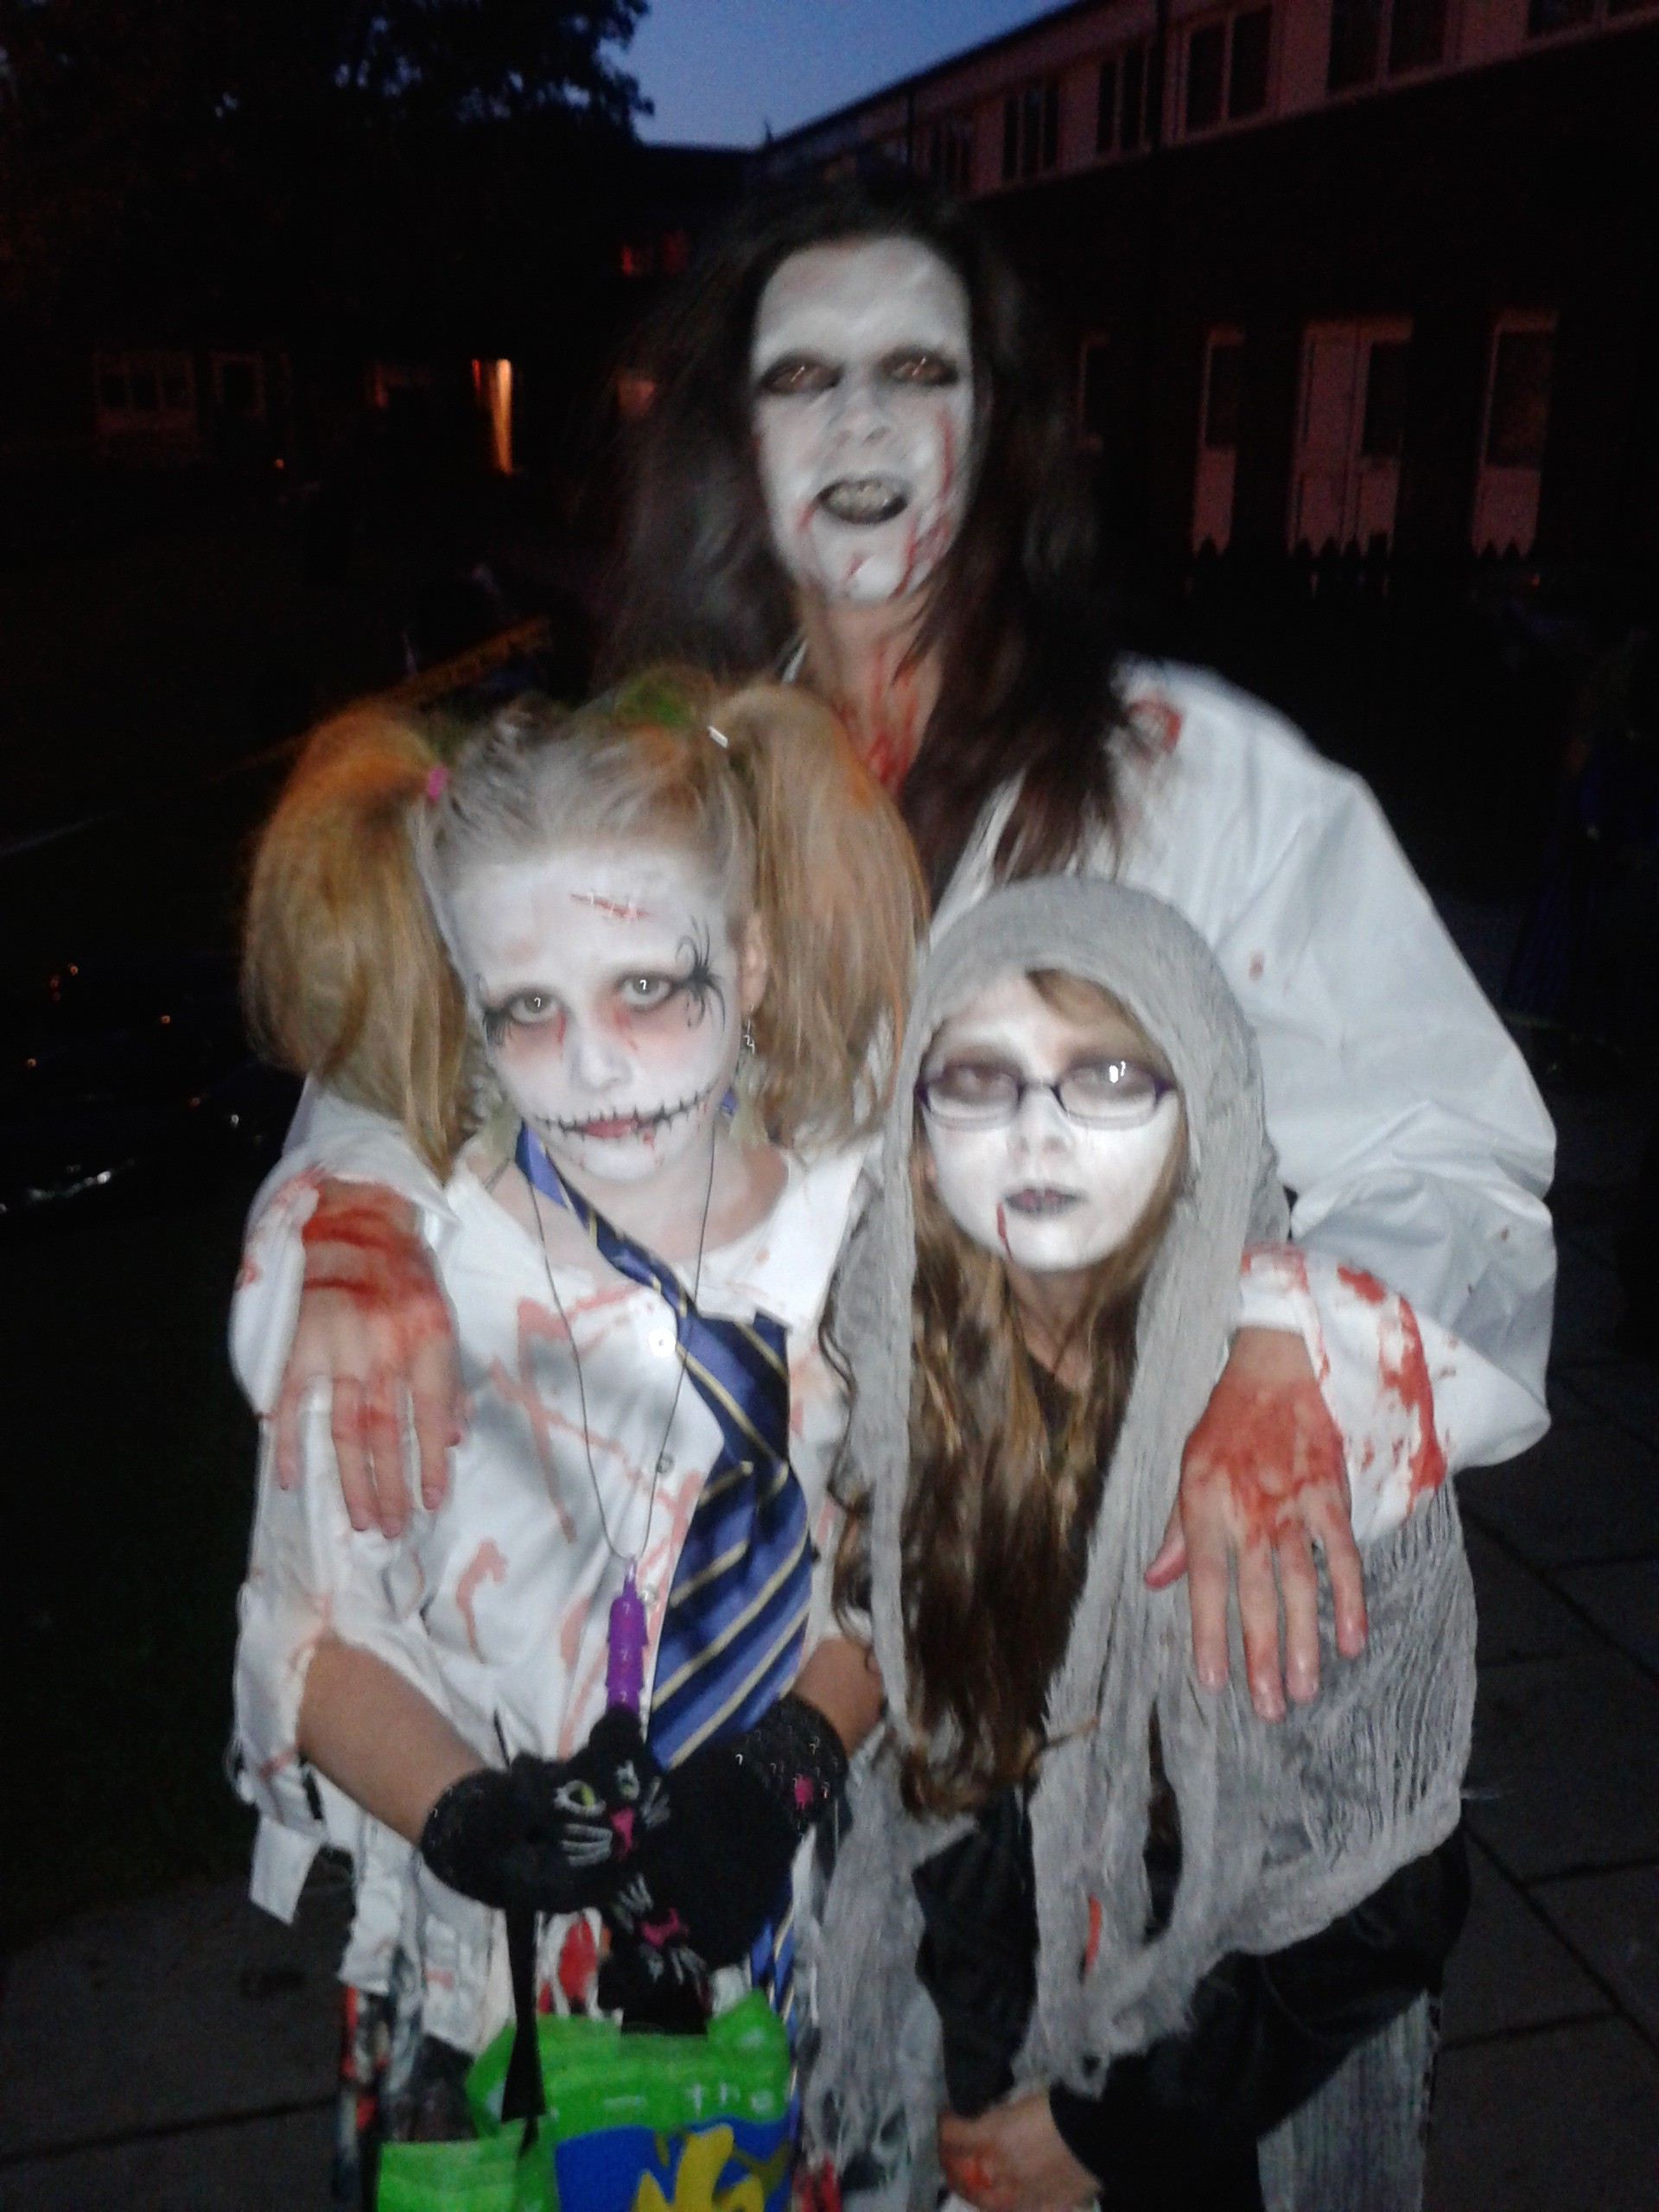 photo of the zombies